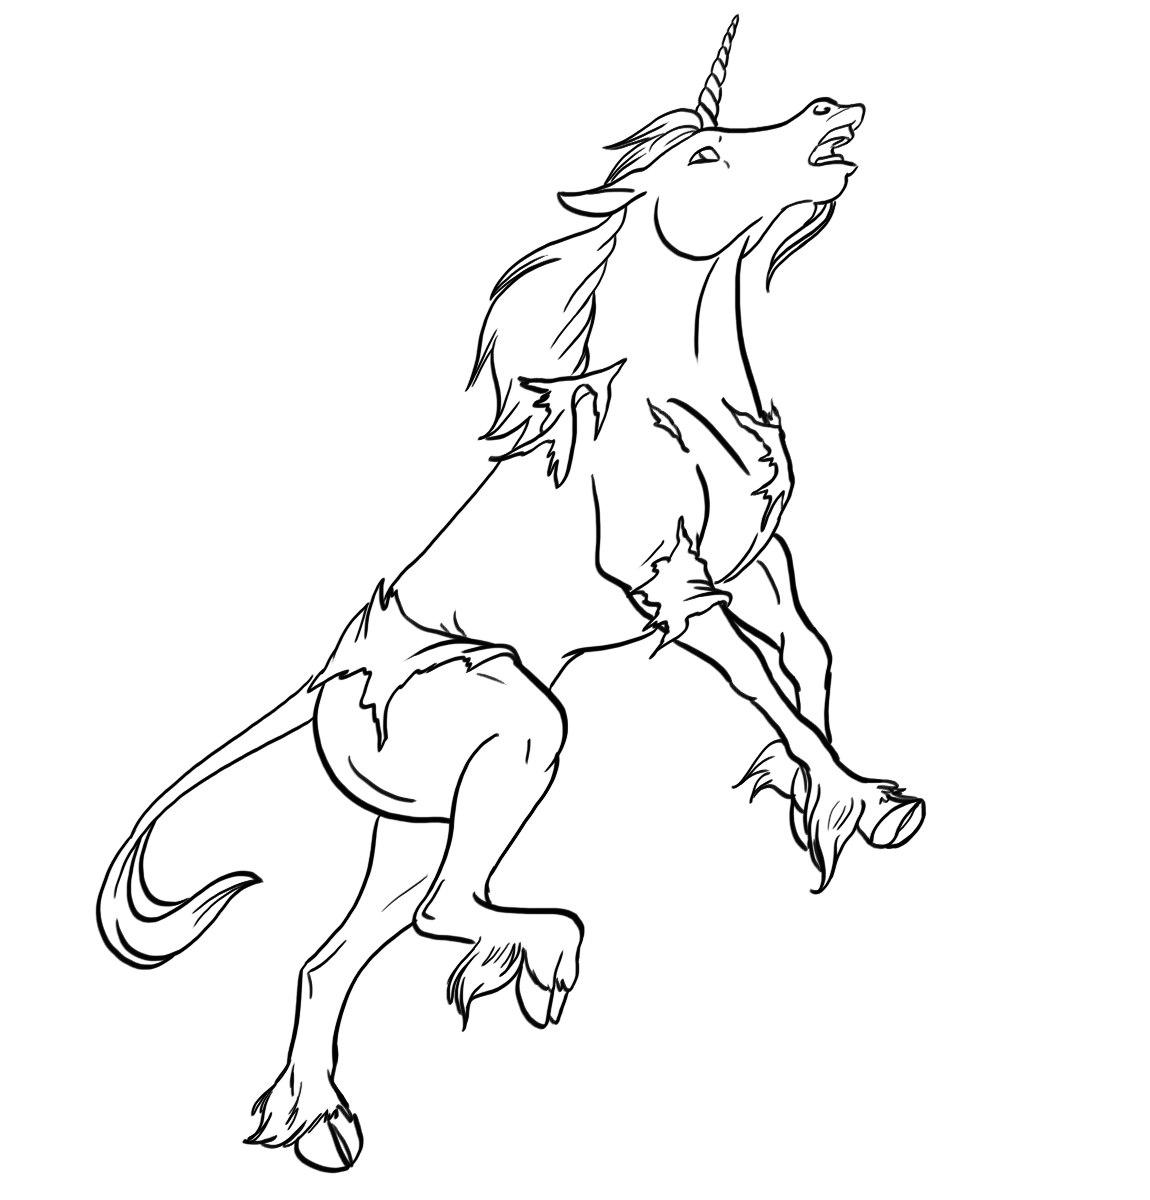 Livestream Commission: Human -> Unicorn by Jakkal - Transfur